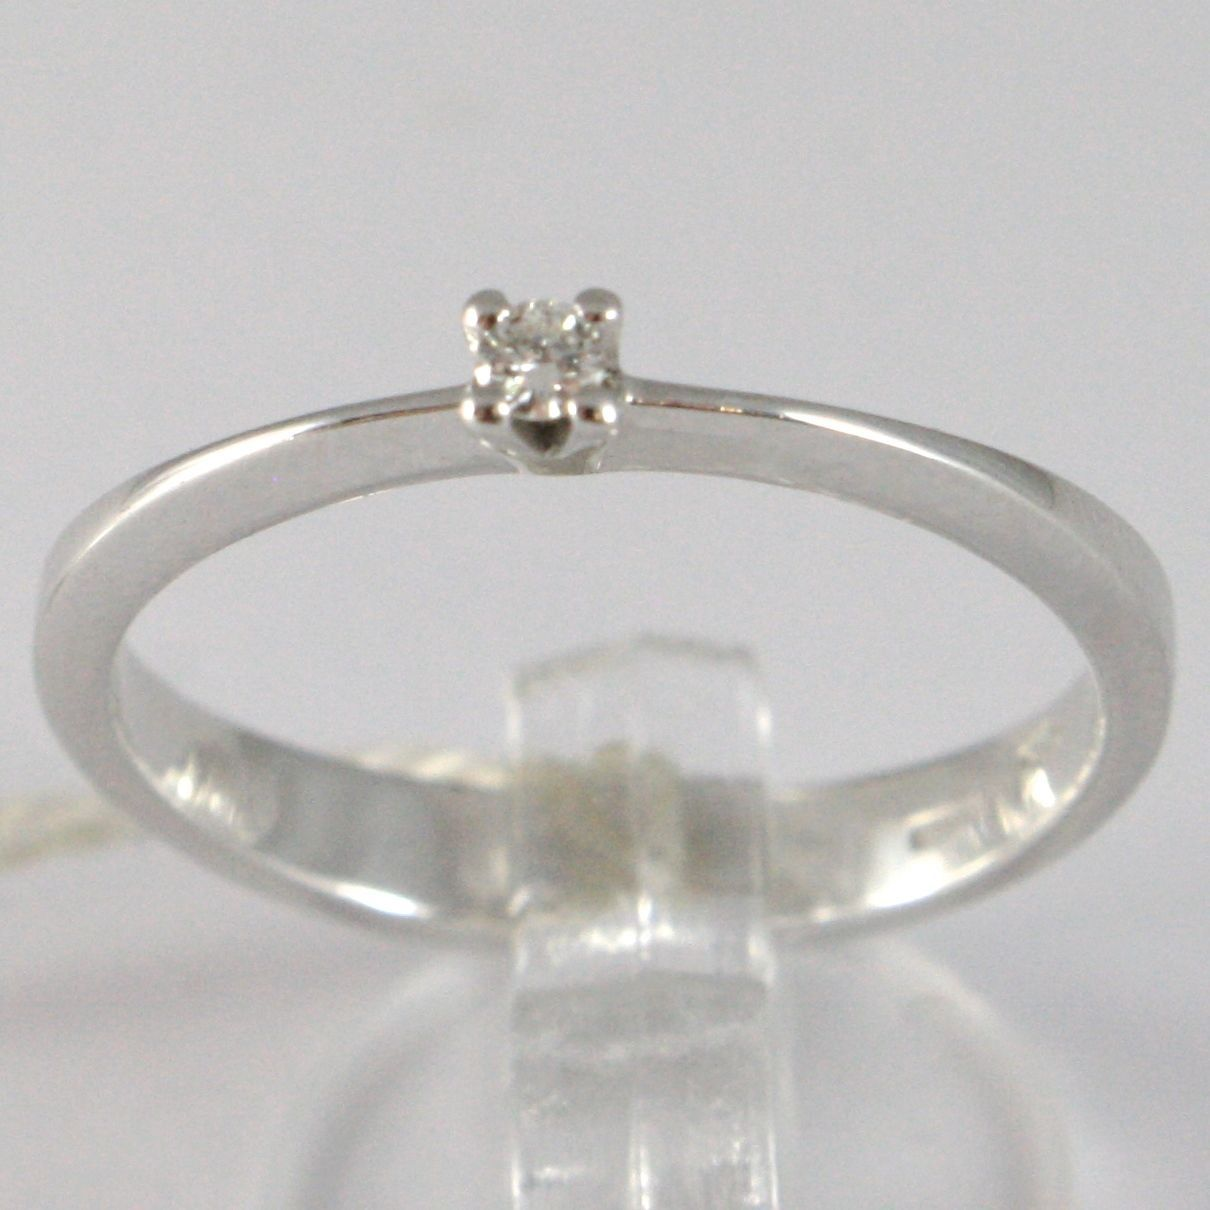 WHITE GOLD RING 750 18K, SOLITAIRE WITH DIAMOND, CT 0.05, MADE IN ITALY